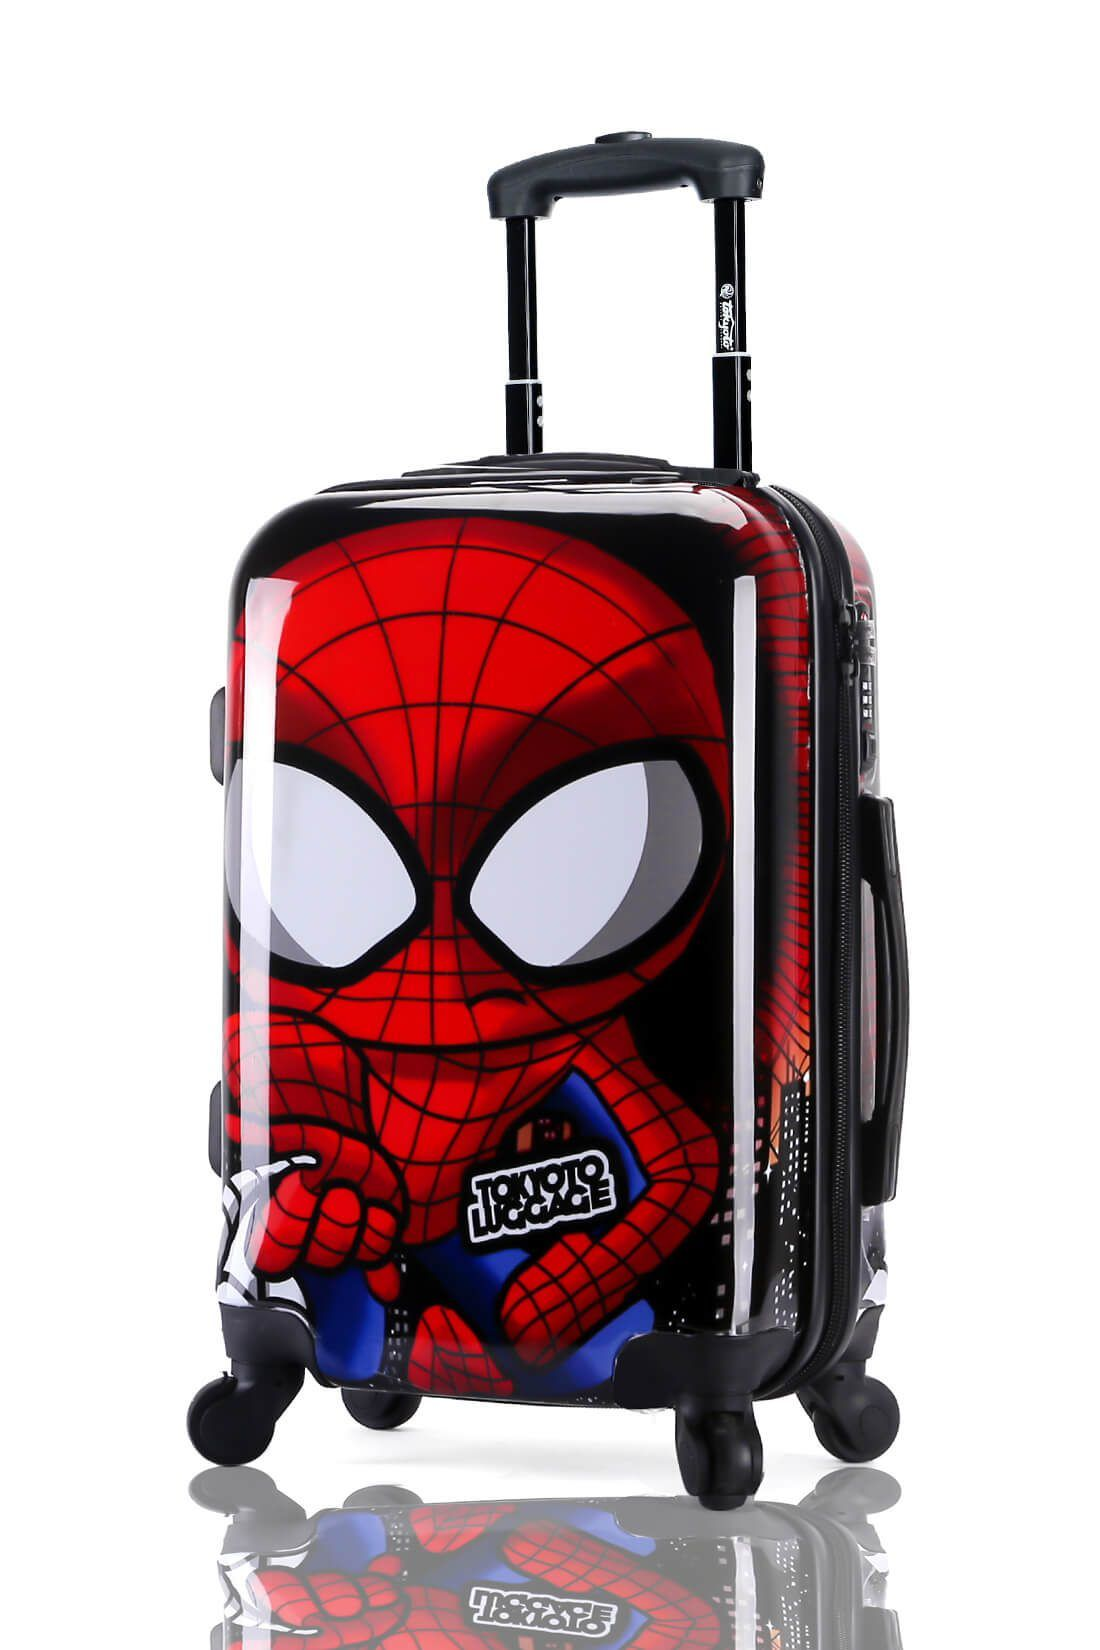 Suitcase Luggage Cabin Size Kids Trolleys TOKYOTO LUGGAGE Model SPIDER BOY